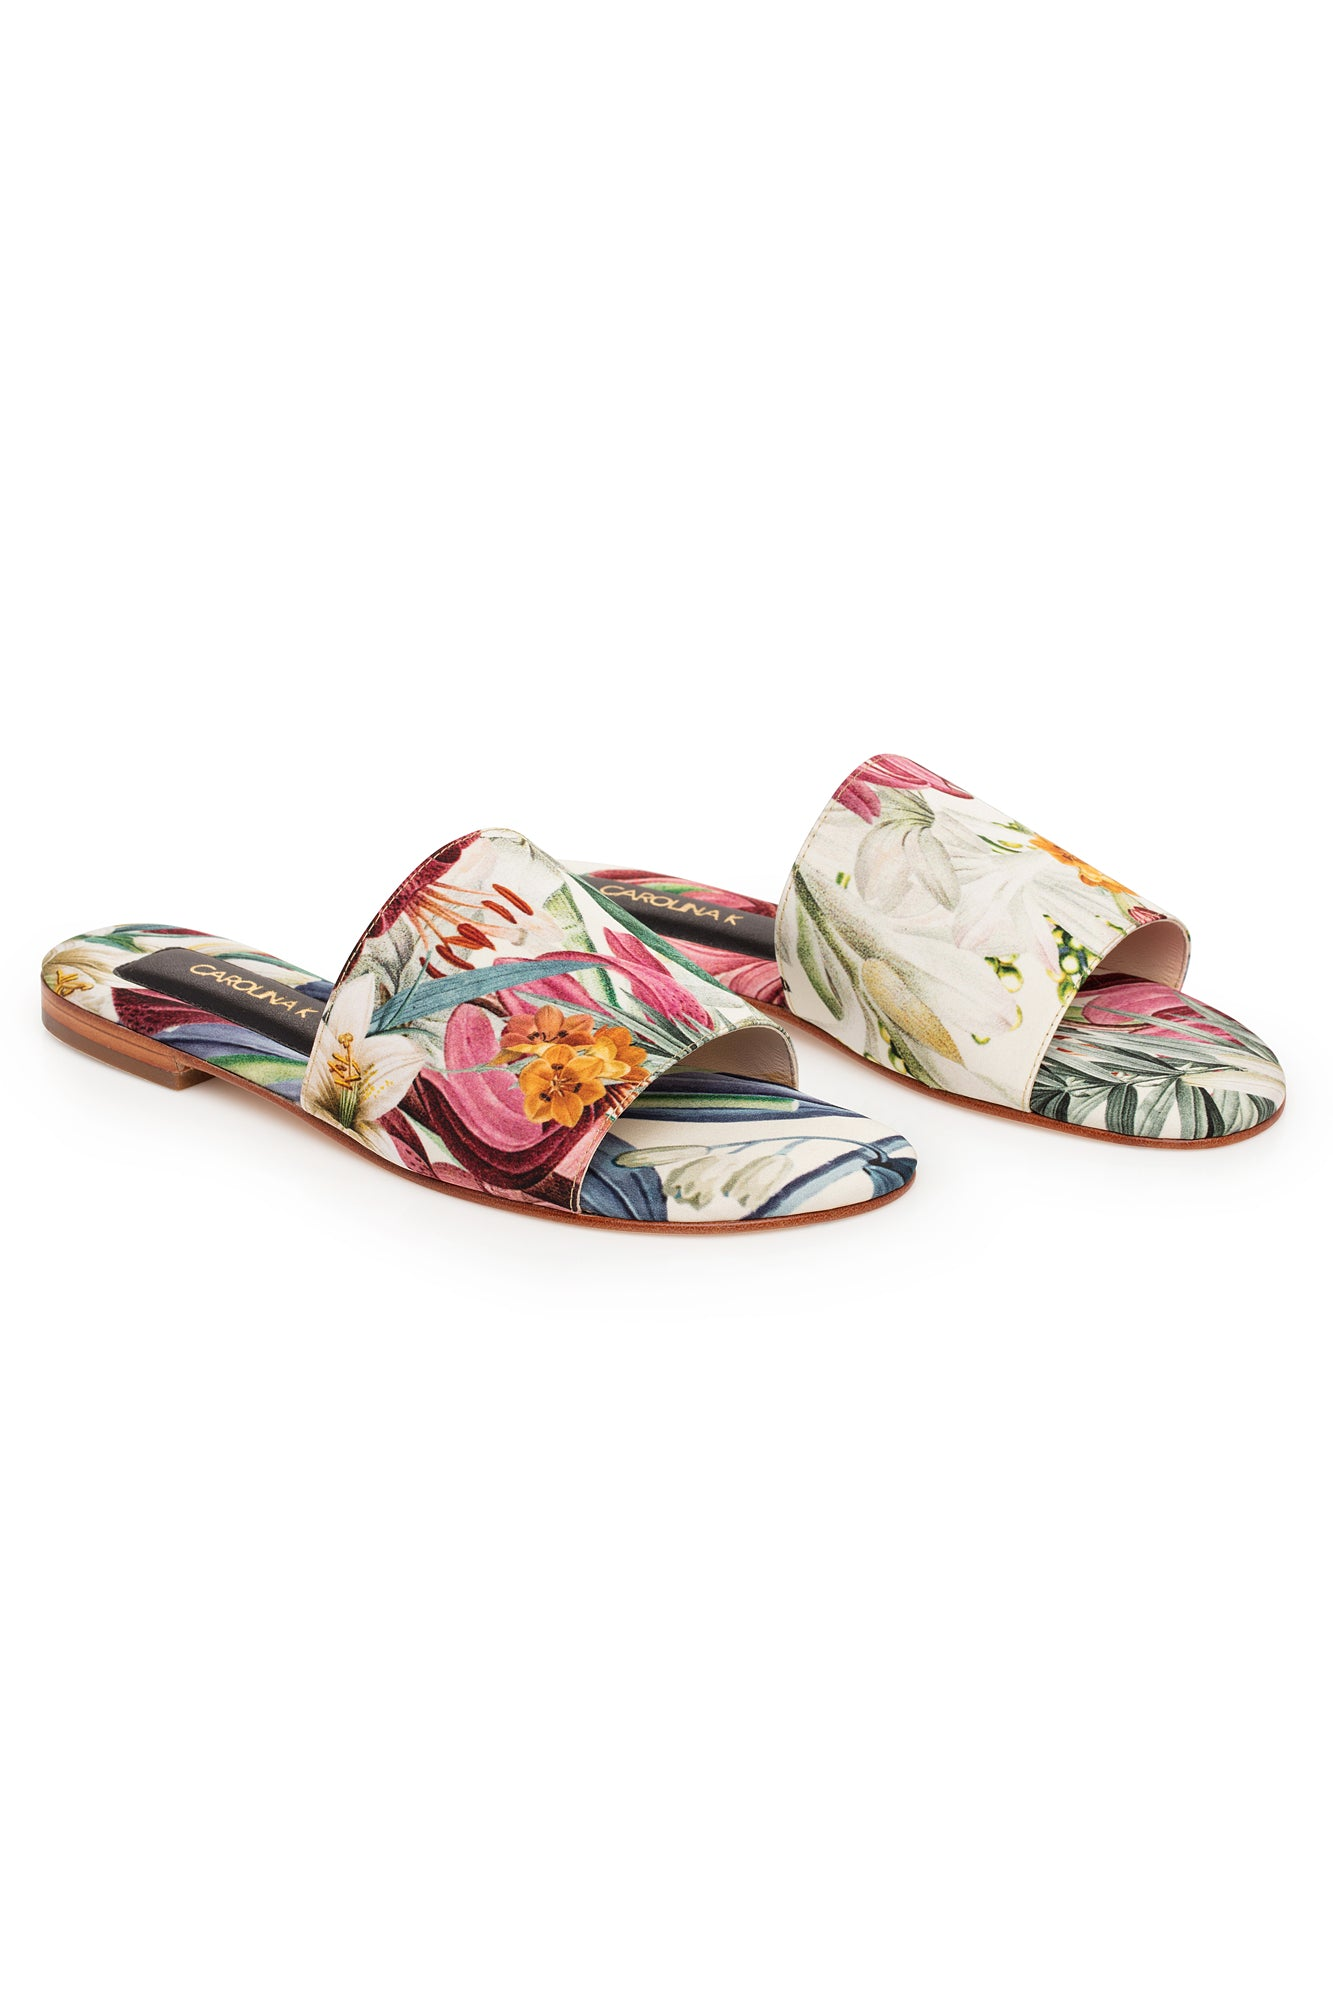 Carolina K Slip On Sandal in Sacred Garden